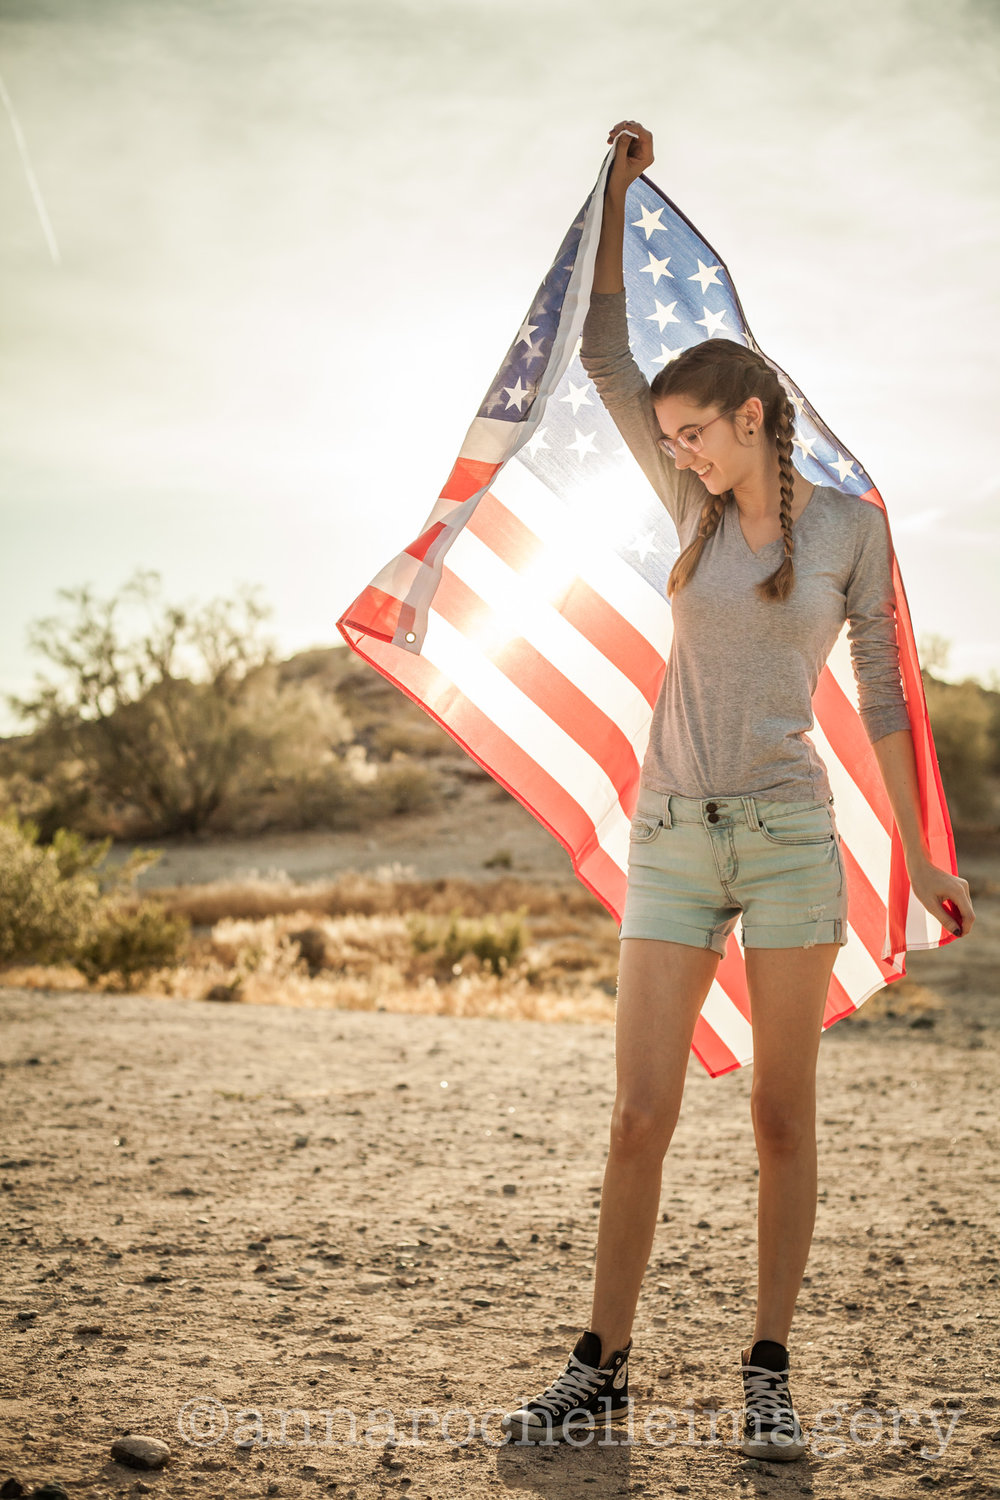 blog-south moutain-pair portraits-anna rochelle imagery.jpg